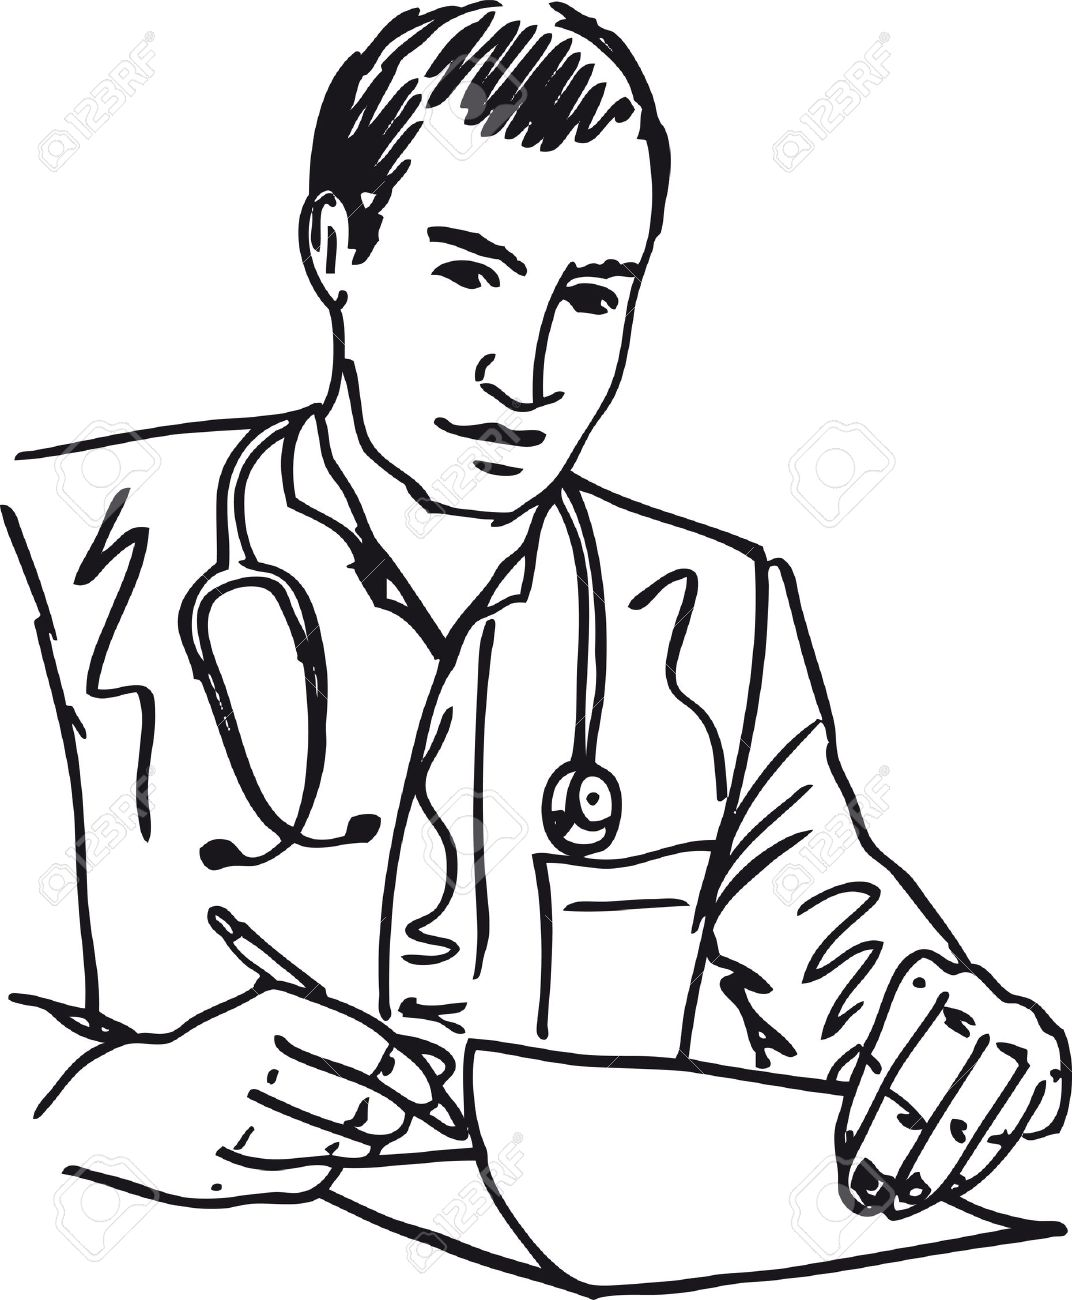 1072x1300 Sketch Of Medical Doctor With Stethoscope Sitting At A Desk